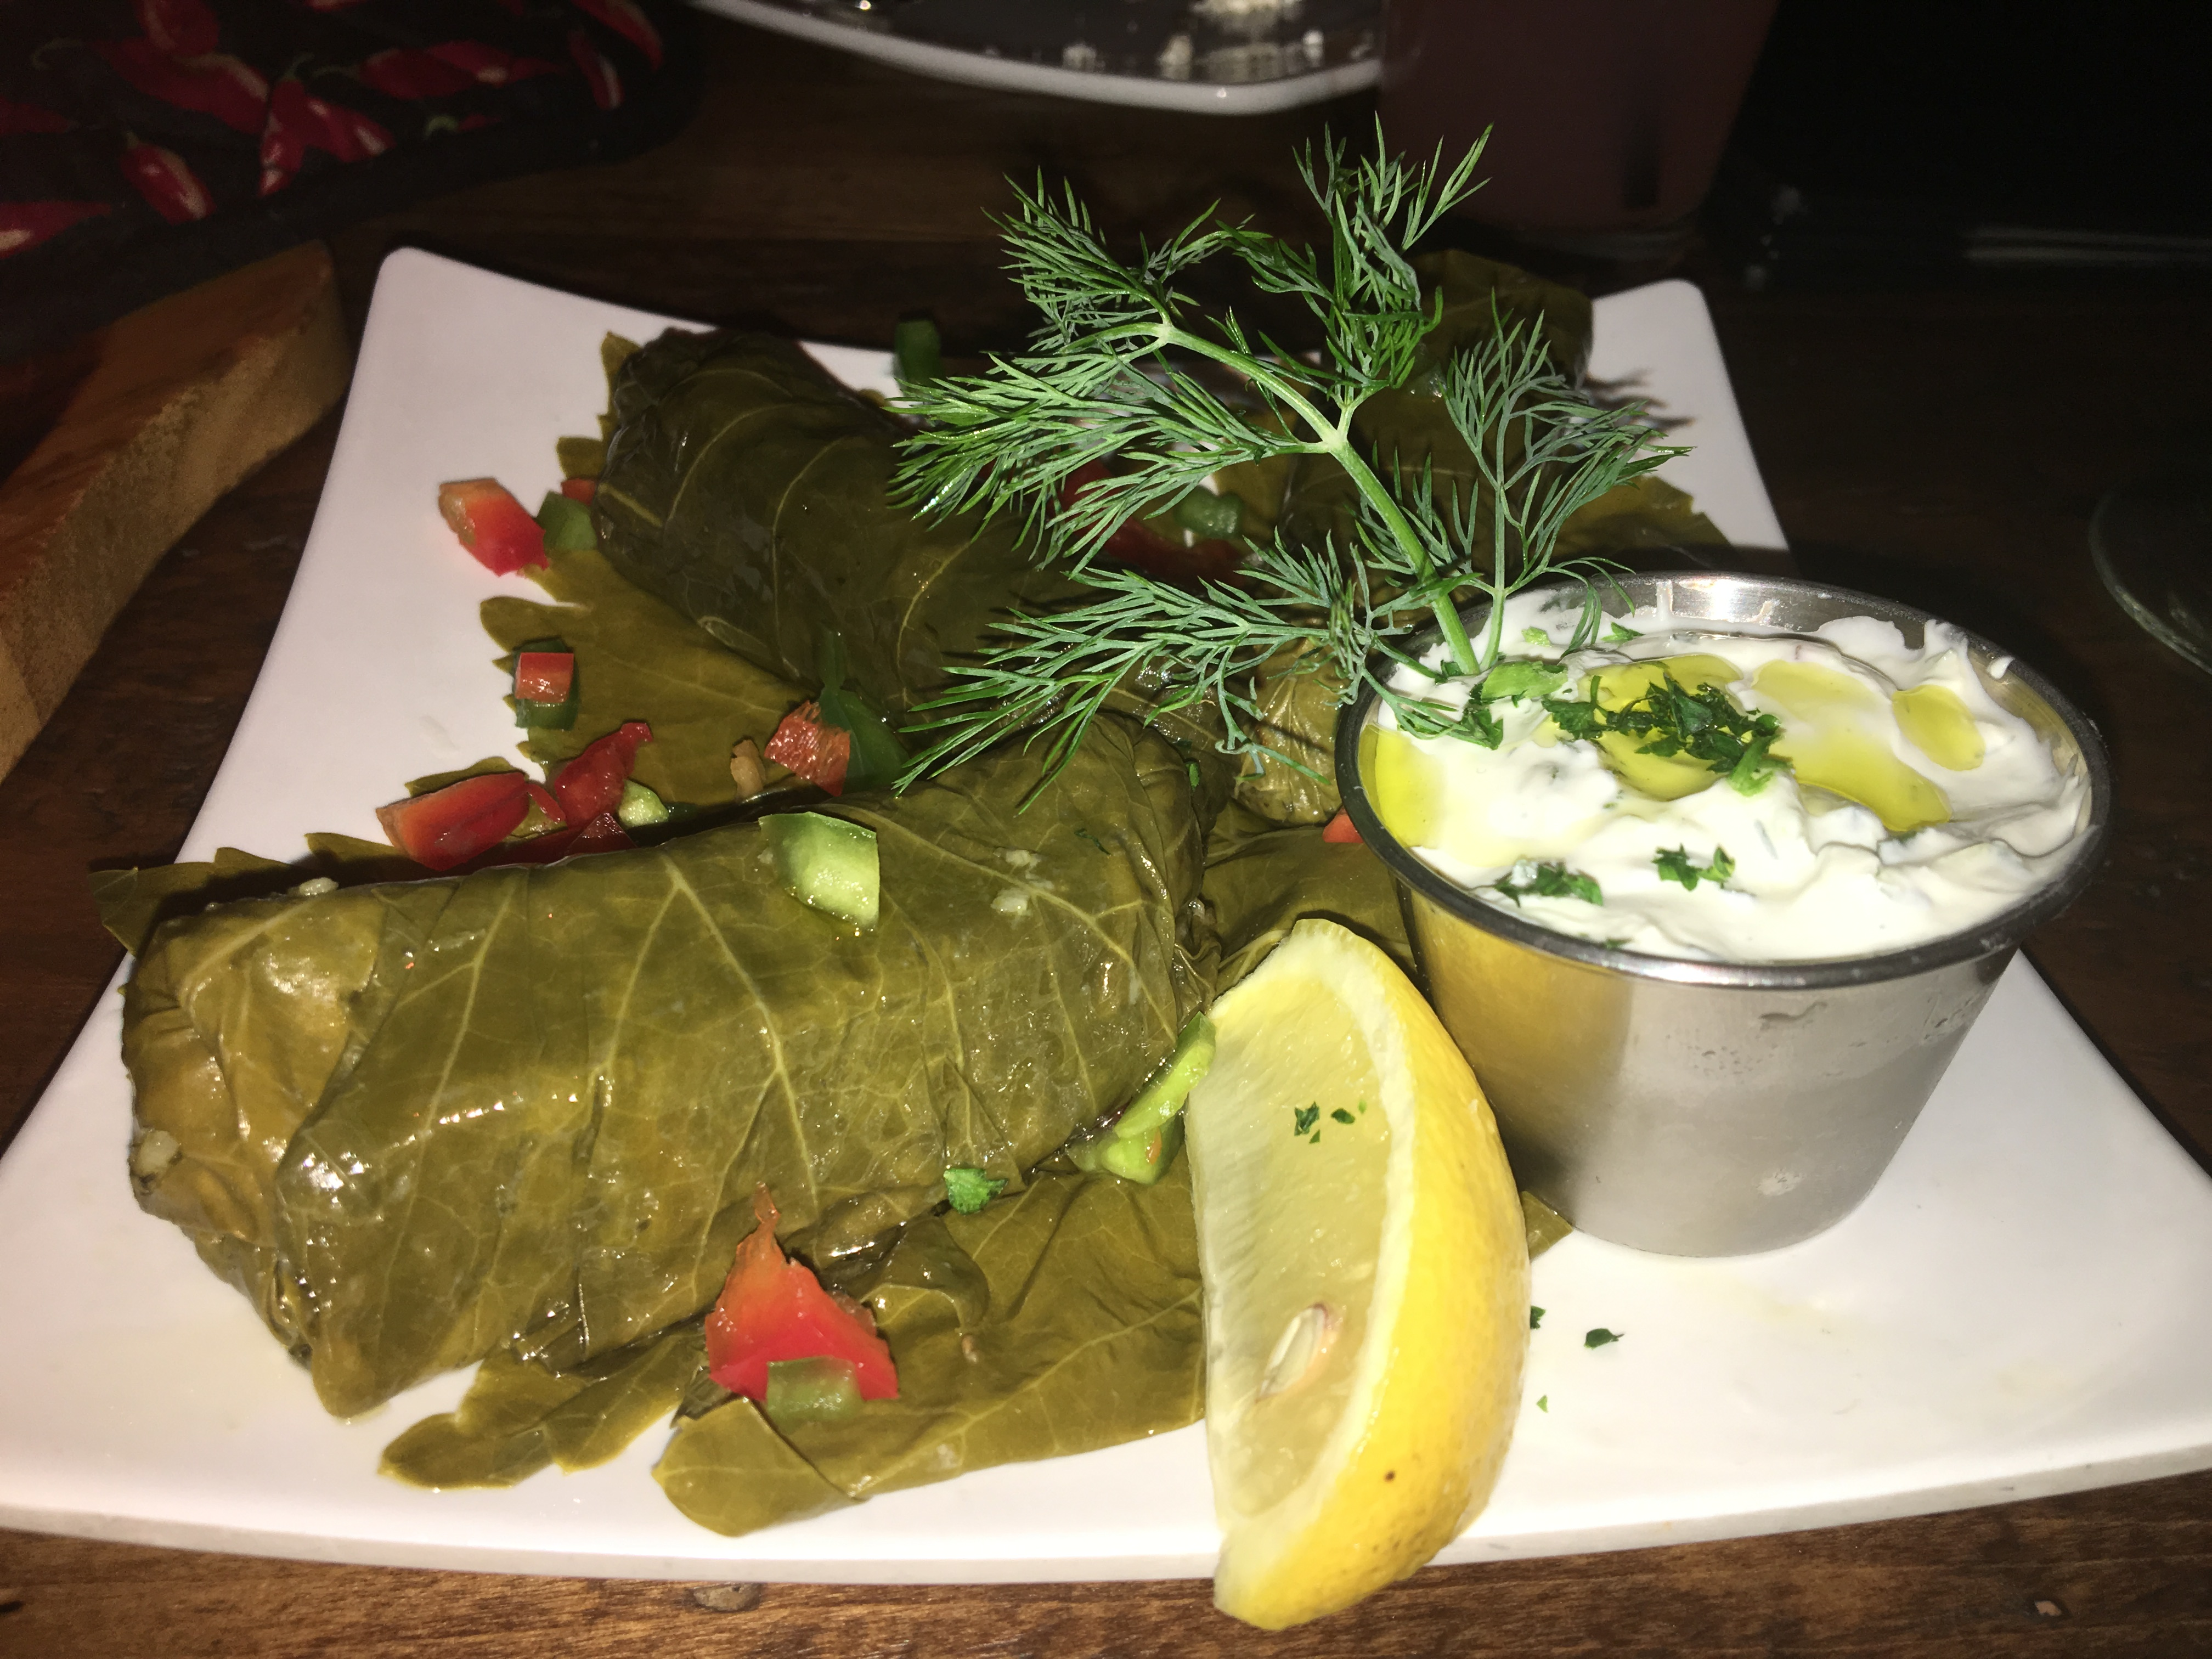 The dolmathes are grape leaves stuffed with rice and spices and have a nice lemony flavor.